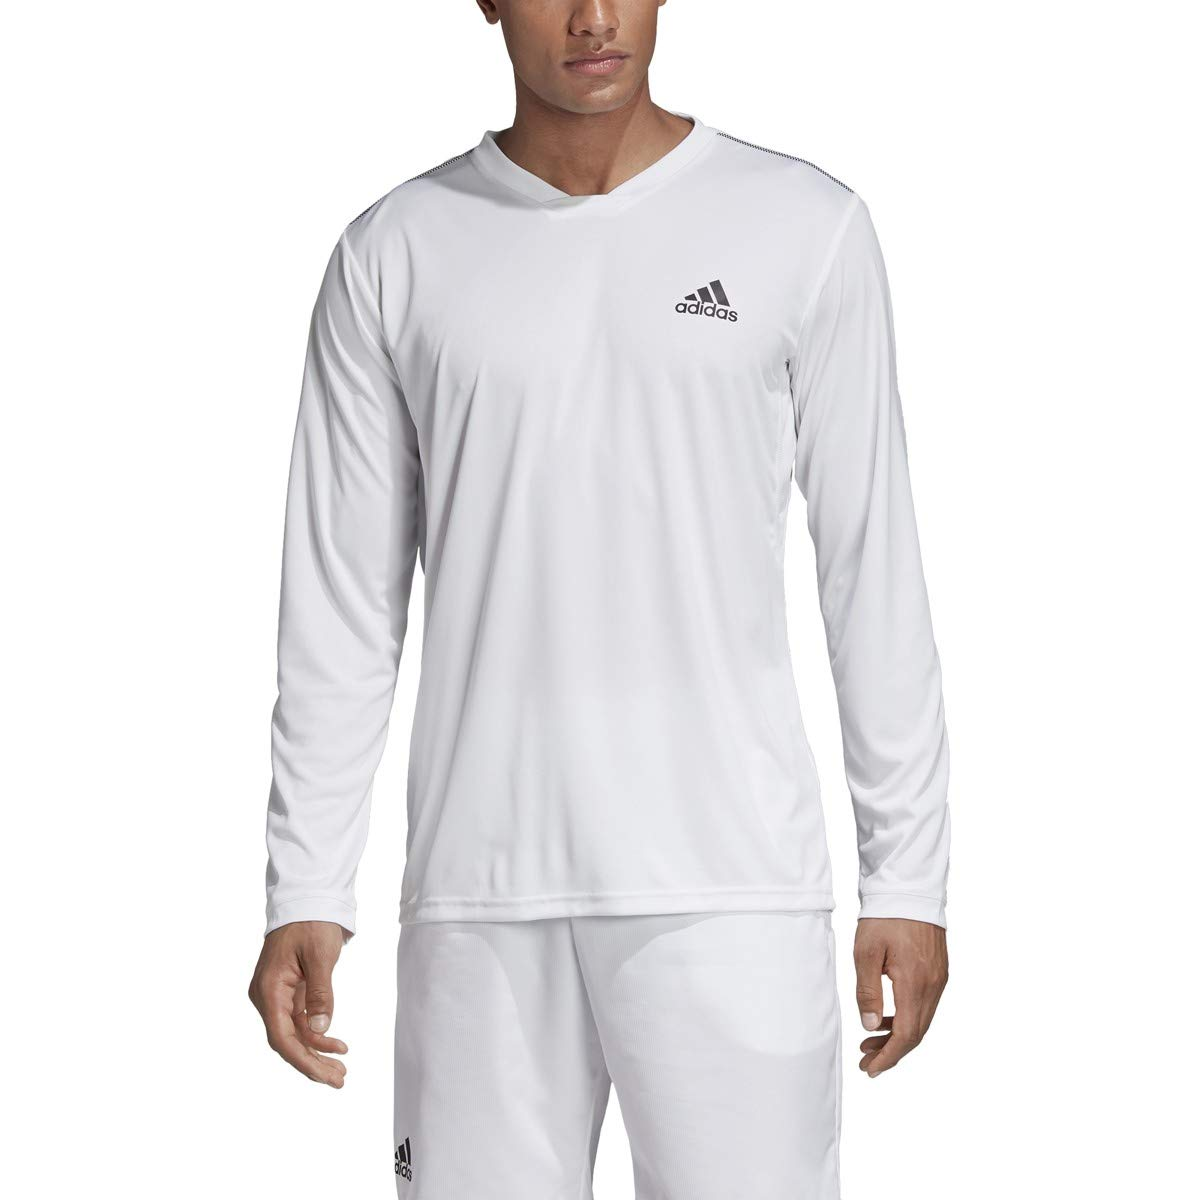 adidas Uv Protect Long-Sleeve Tennis Tee, White/Black, X-Small